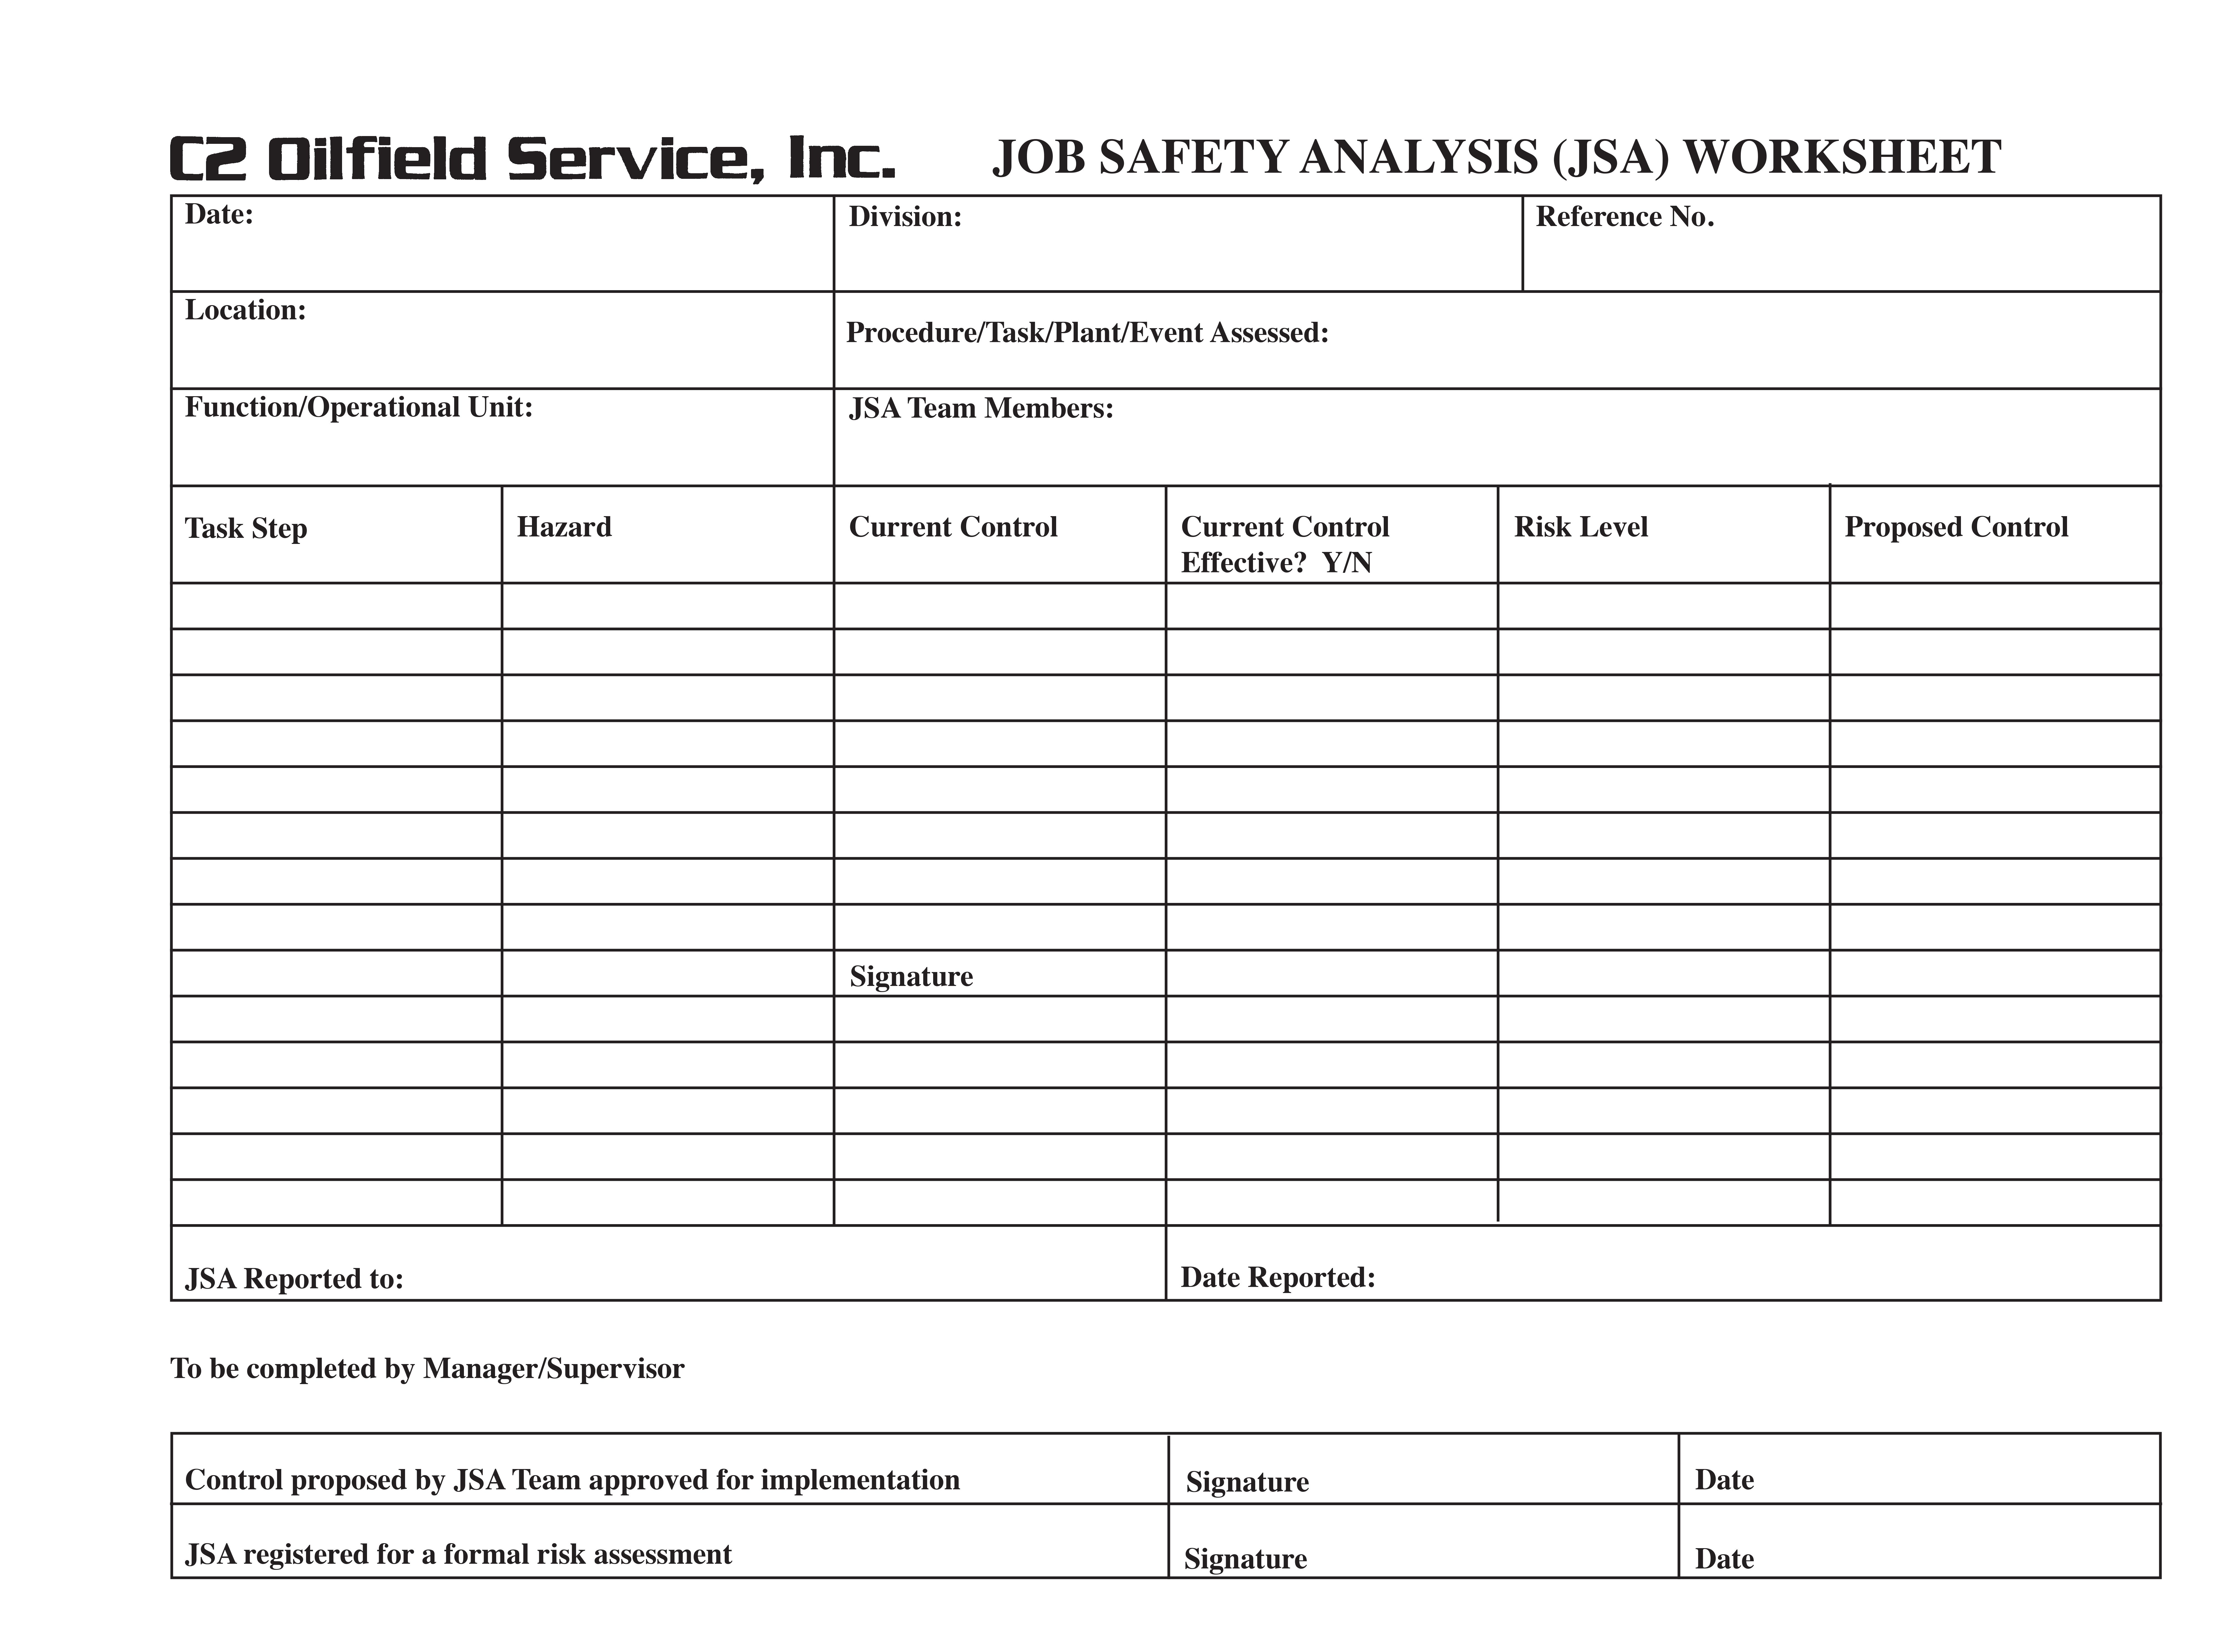 Job Safetyysis Form With Images